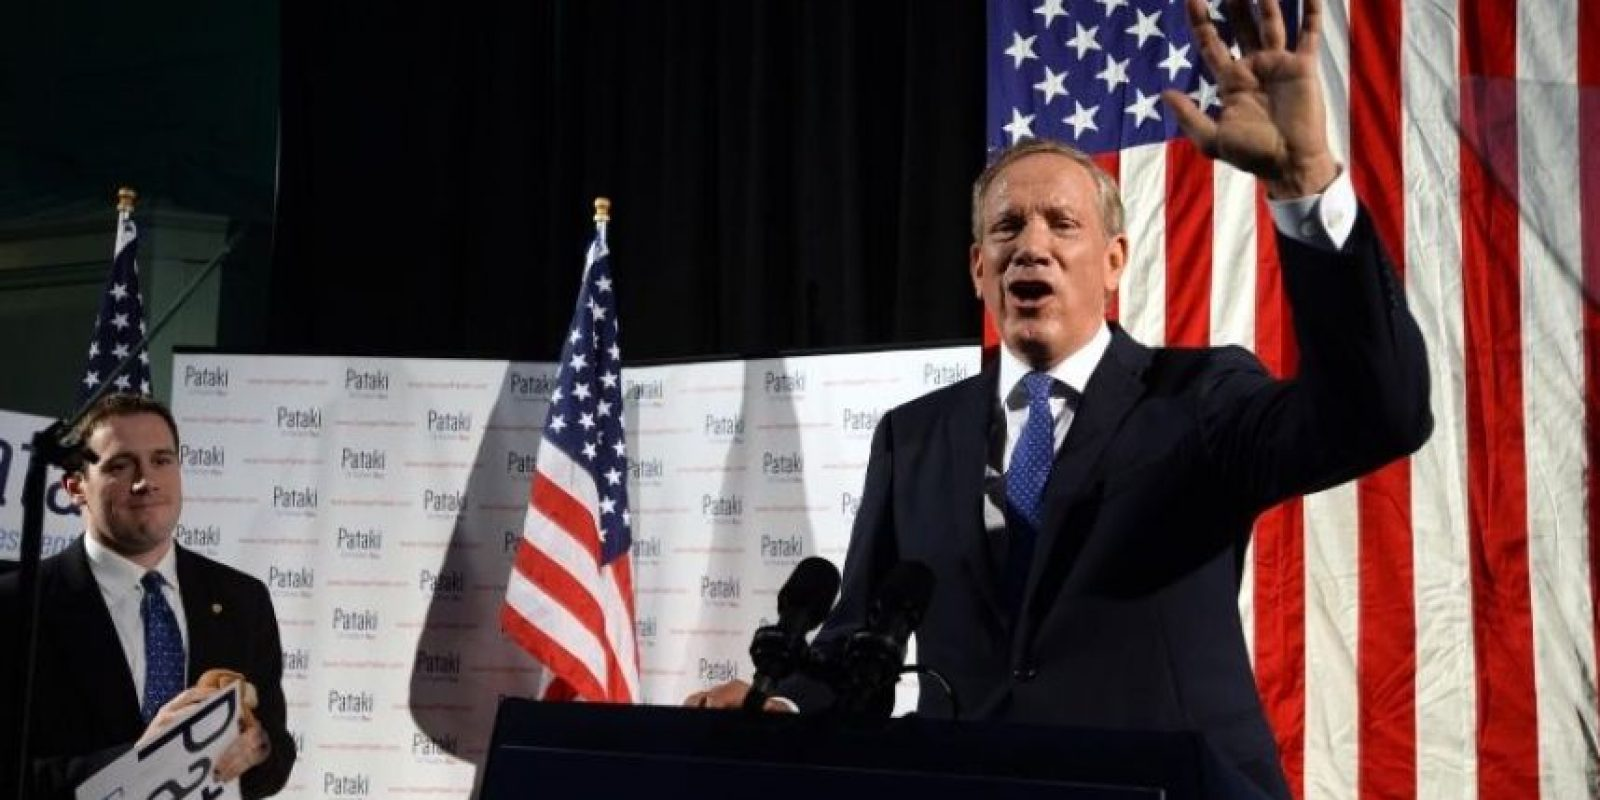 George Pataki Foto: Getty Images